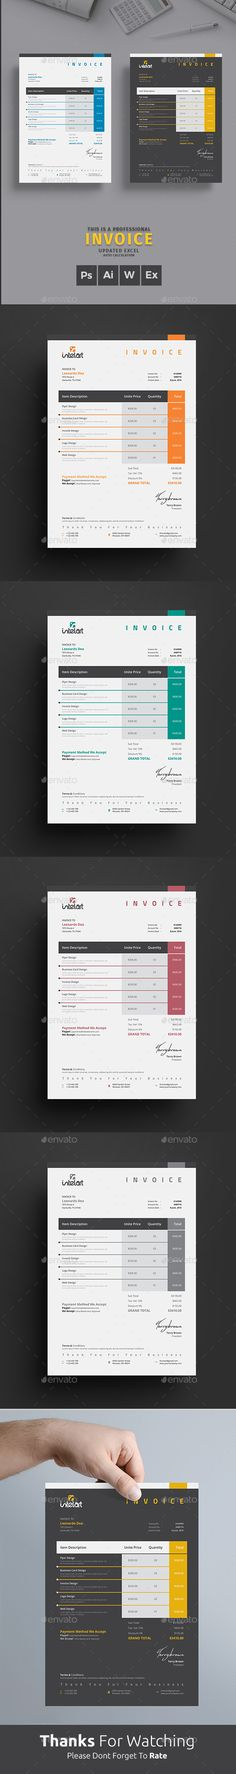 Invoice Pinterest Template, Proposal templates and Report design